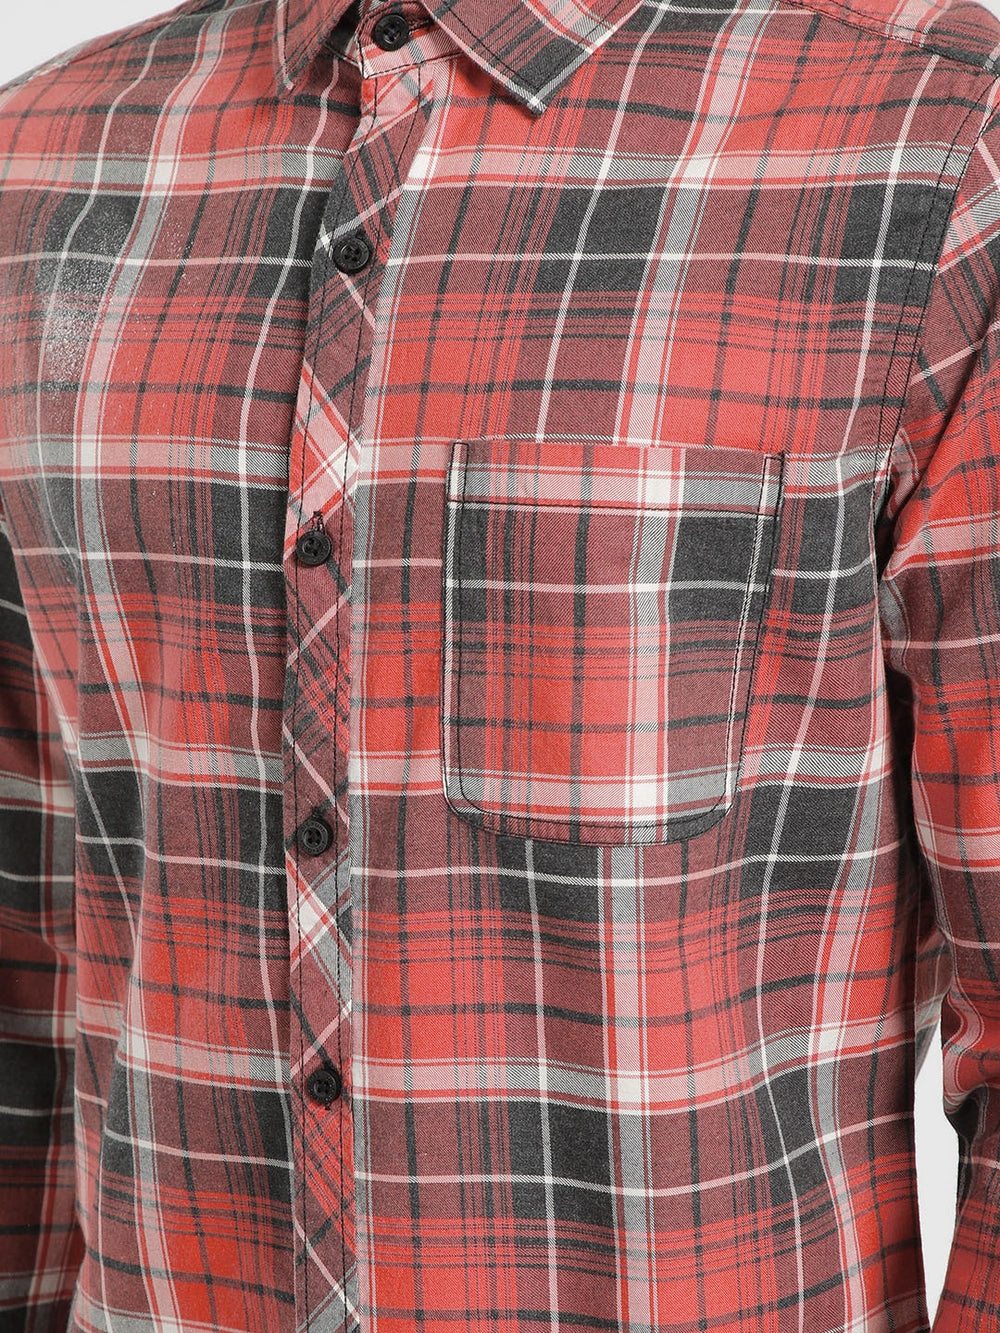 Disrupt Checkered Casual Cut Away Shirt